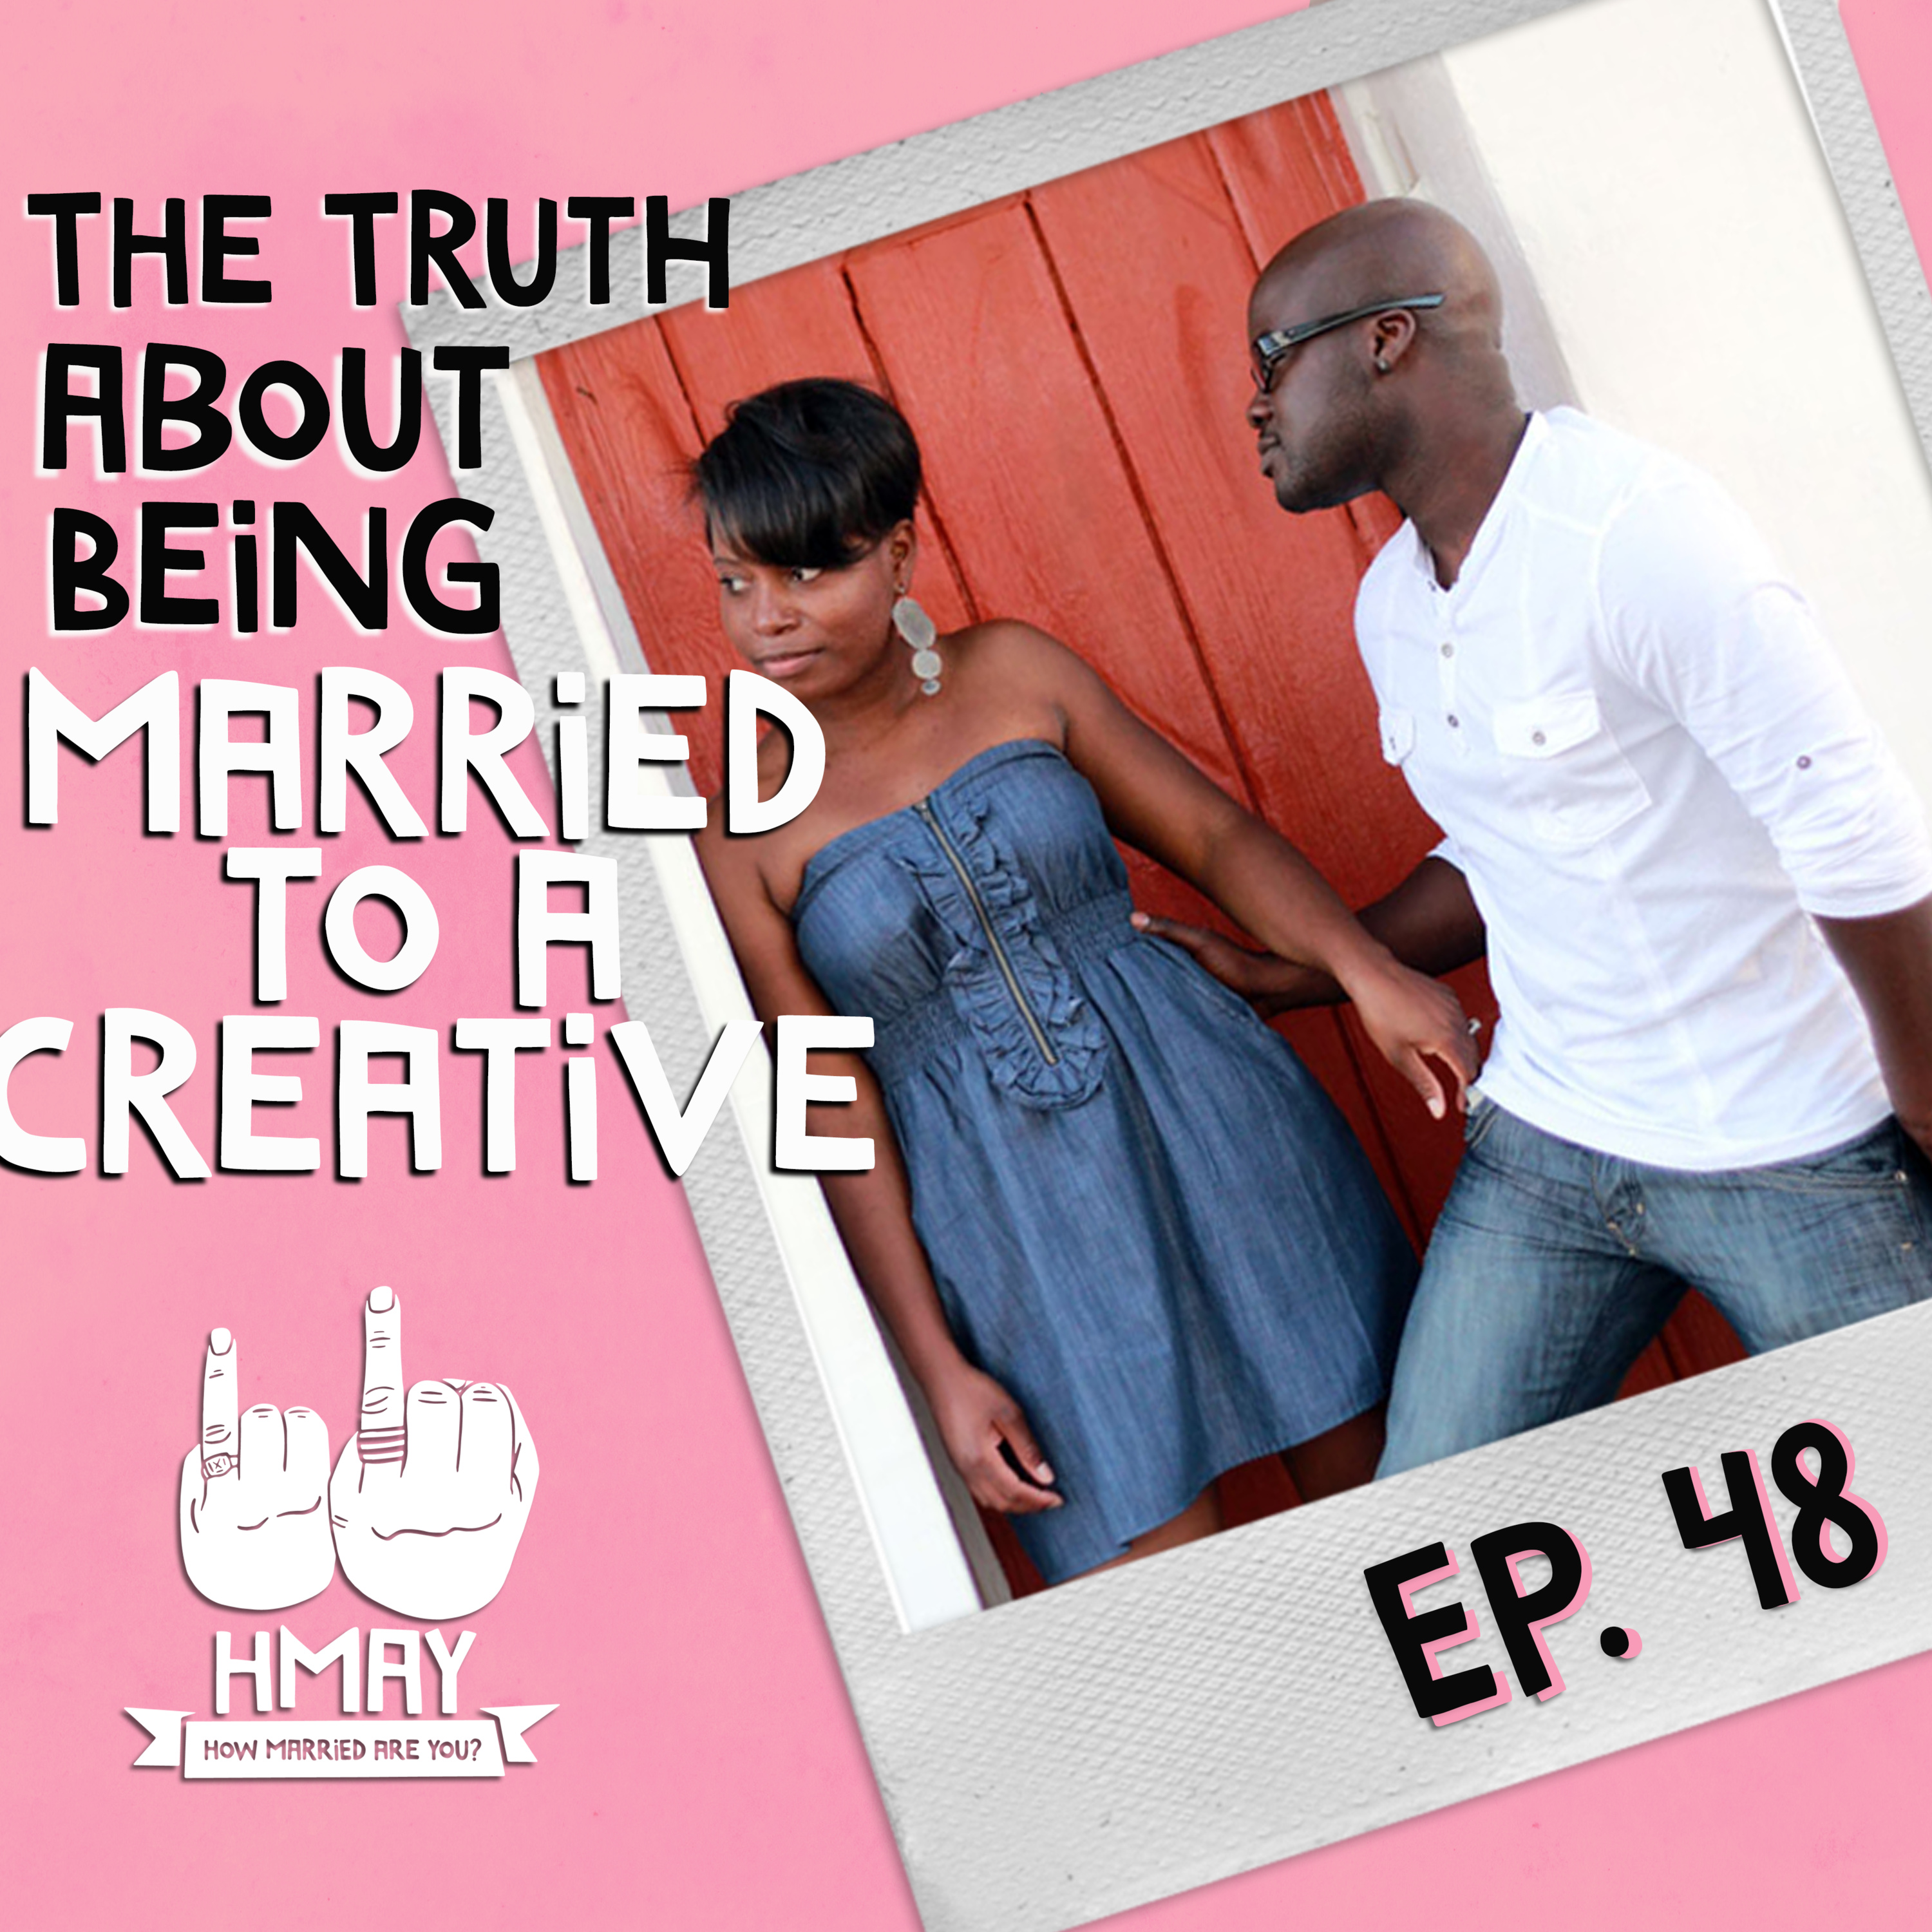 HMAY?! 048| The Truth About Being Married to a Creative!